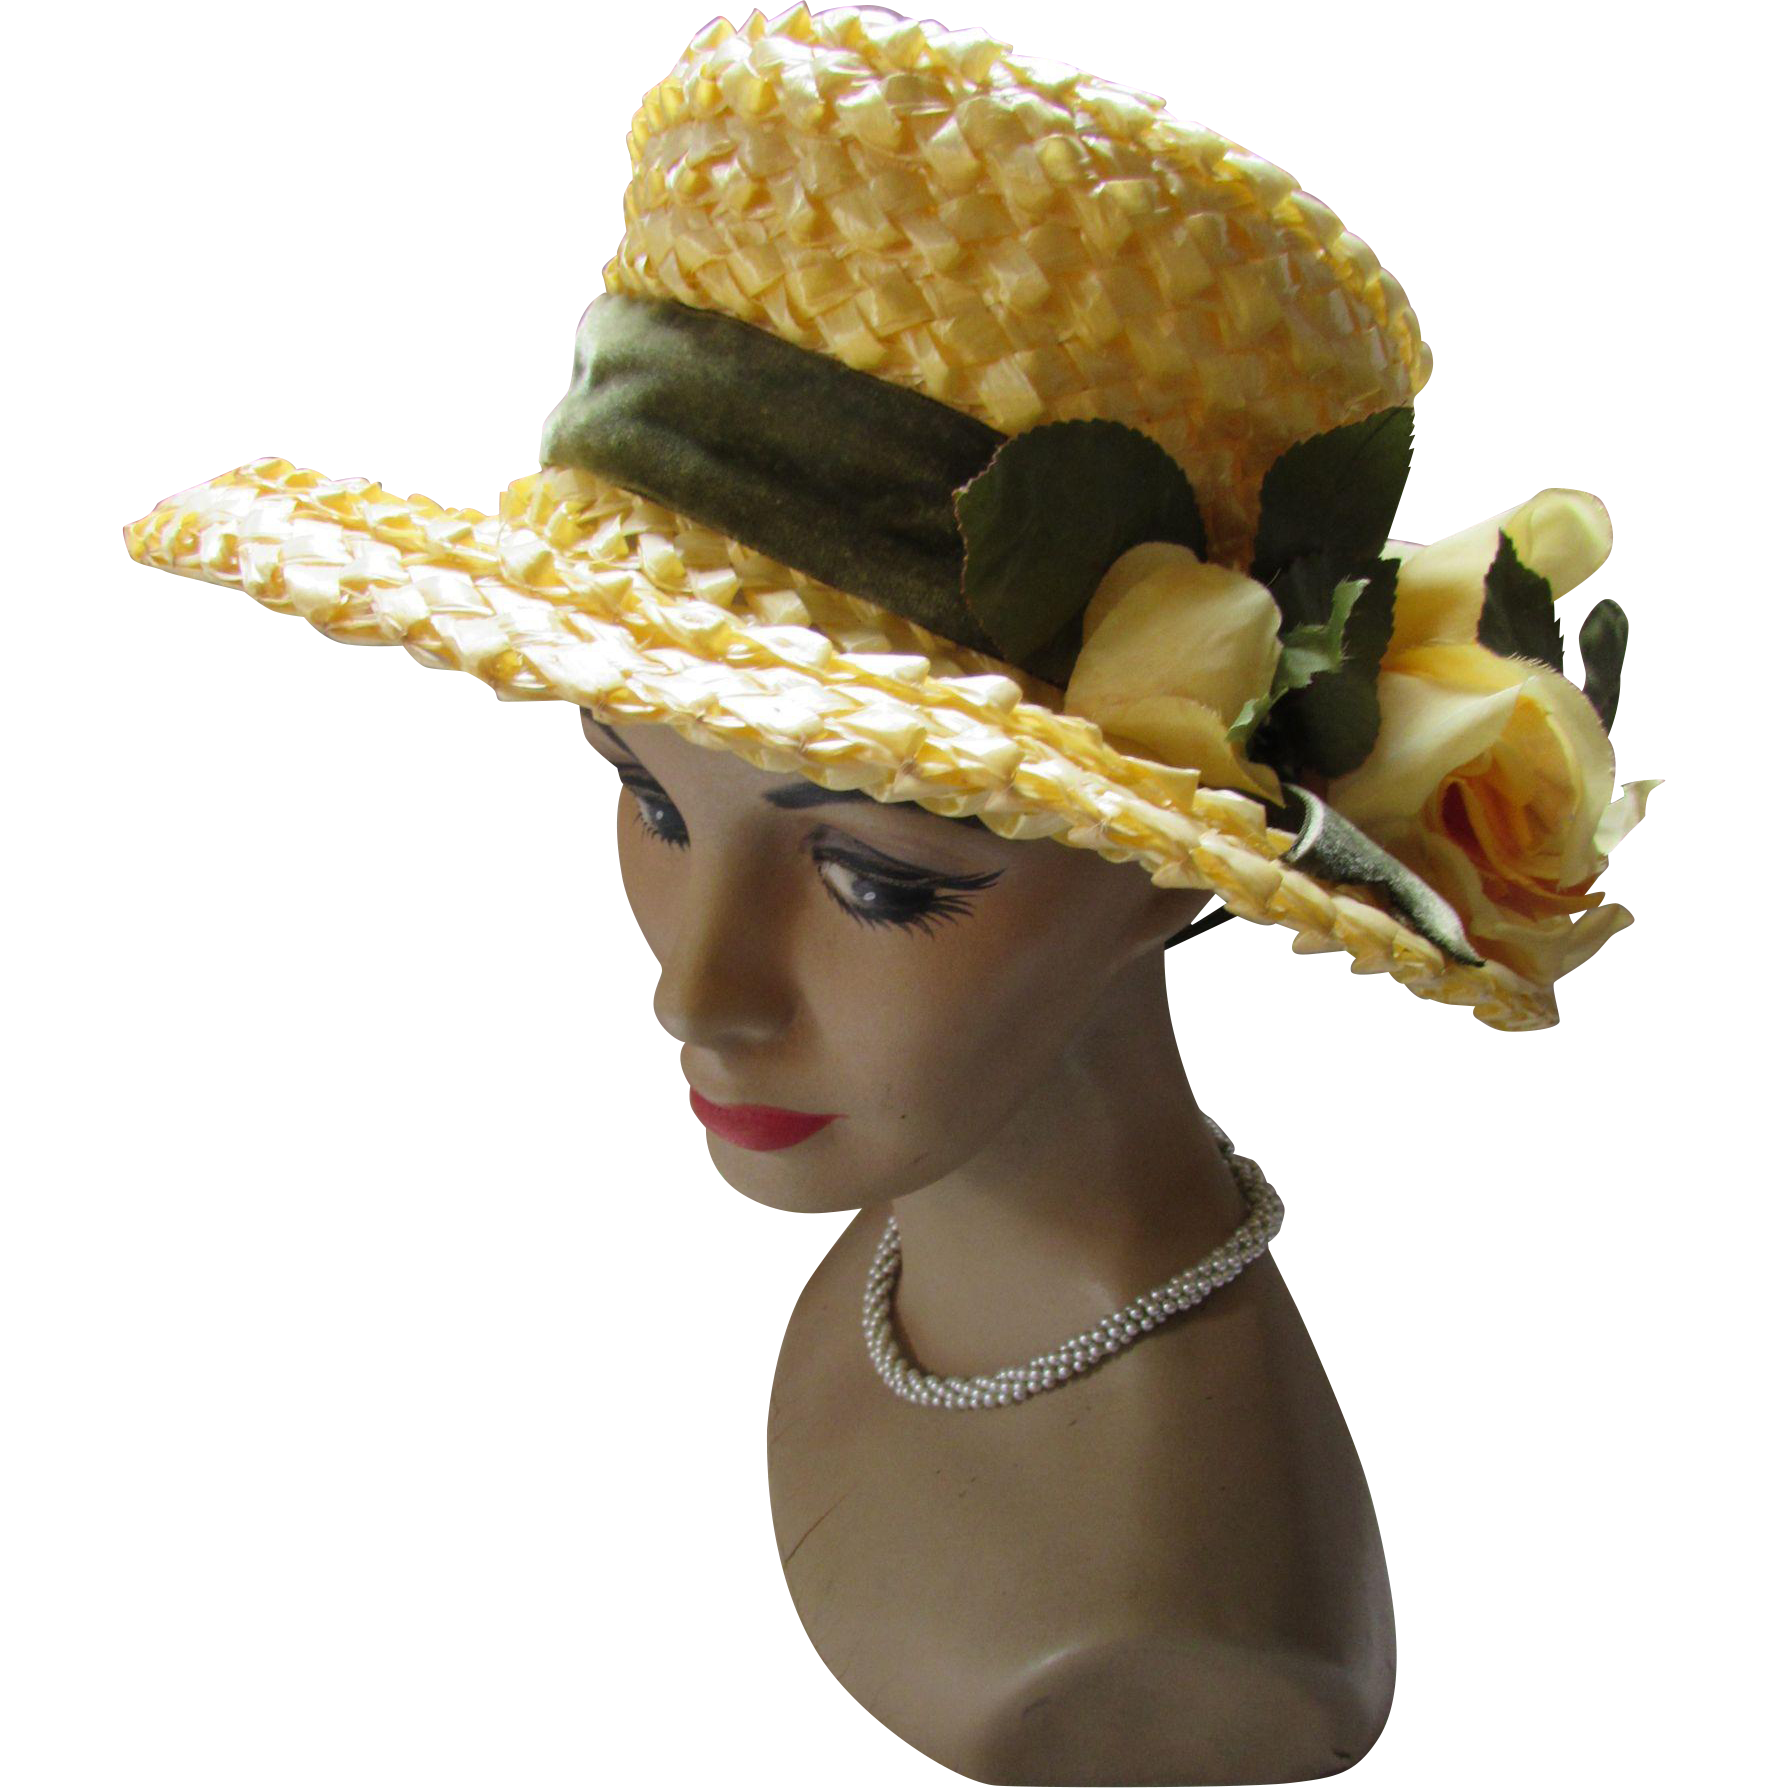 Sunny Yellow High Crown Hat in Cellophane with Large Yellow Rose Artisan Made Vi Williams